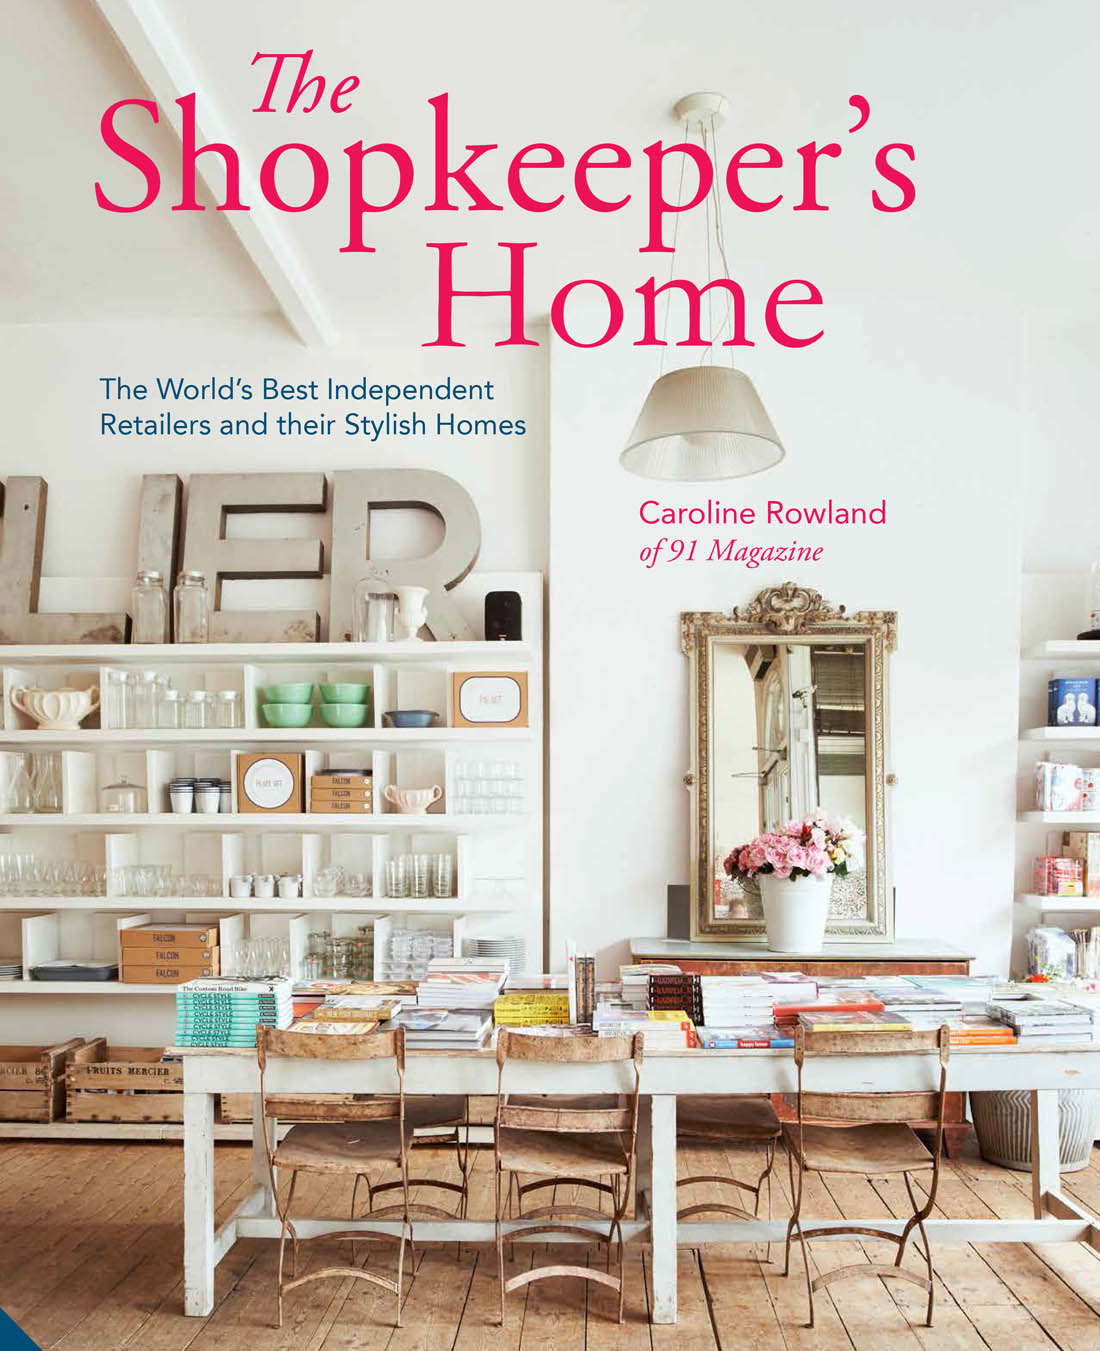 The Shopkeeper's Home by Caroline Rowland | Apartment Apothecary